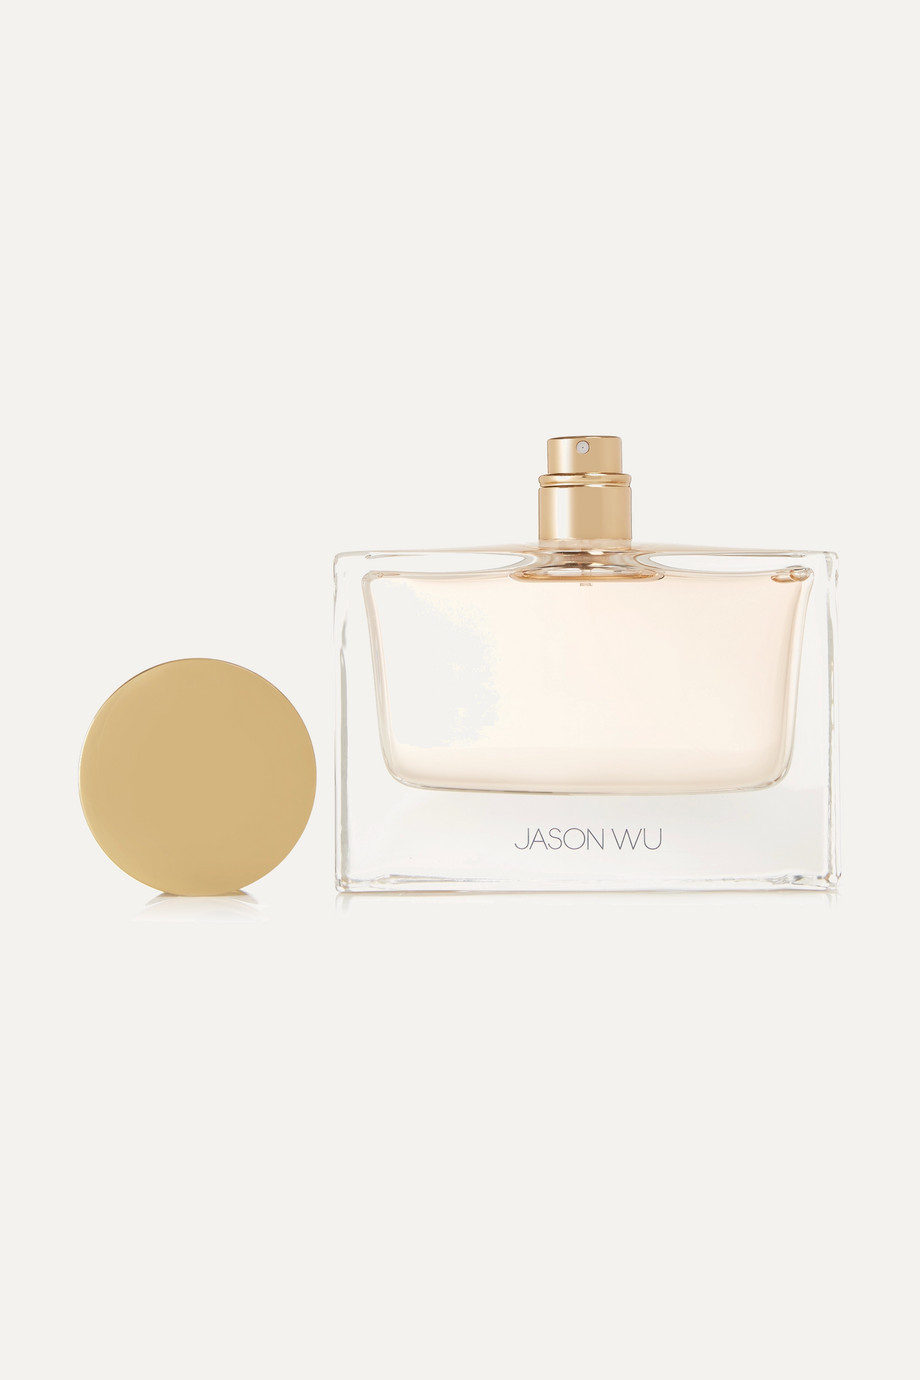 Jason Wu Beauty Eau de Parfum, 90ml